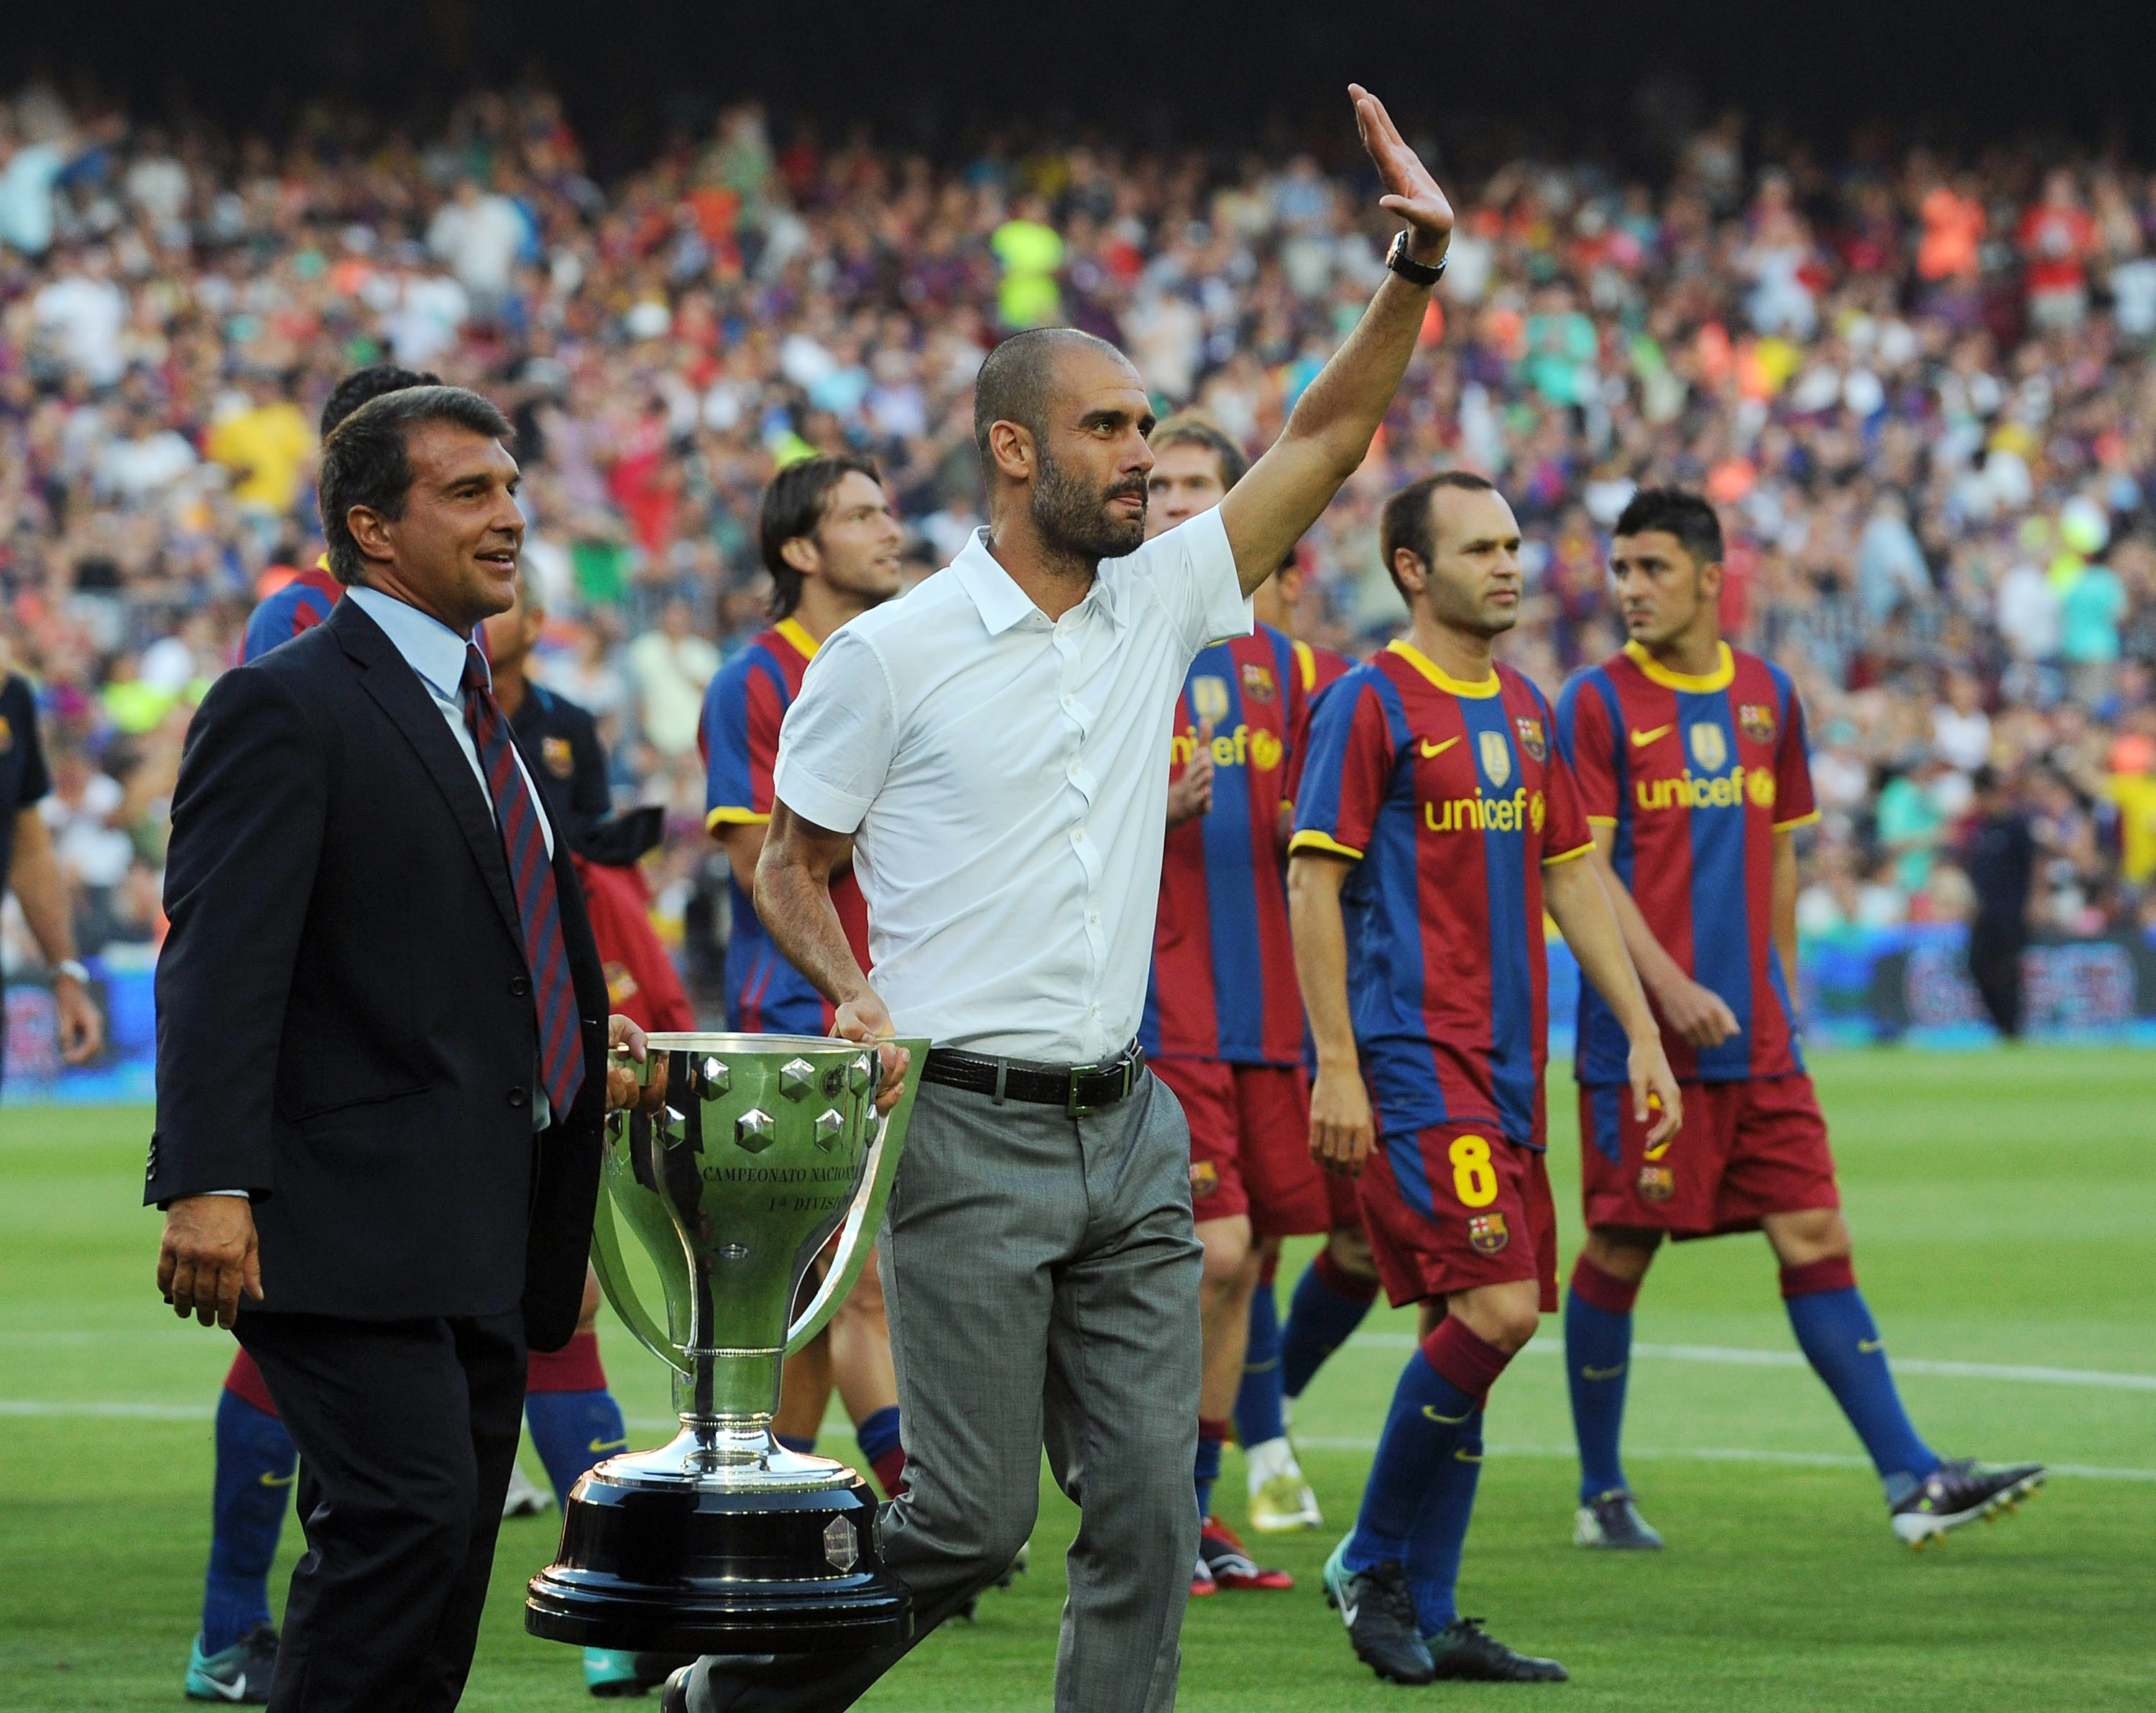 BARCELONA, SPAIN - AUGUST 25:  Former Barcelona president Joan Laparta (L) holds the 2009-2010 La Liga trophy with Barcelona manager Josep Guardiola during a lap of honour before the Joan Gamper Trophy match between Barcelona and AC Milan at Camp Nou stad